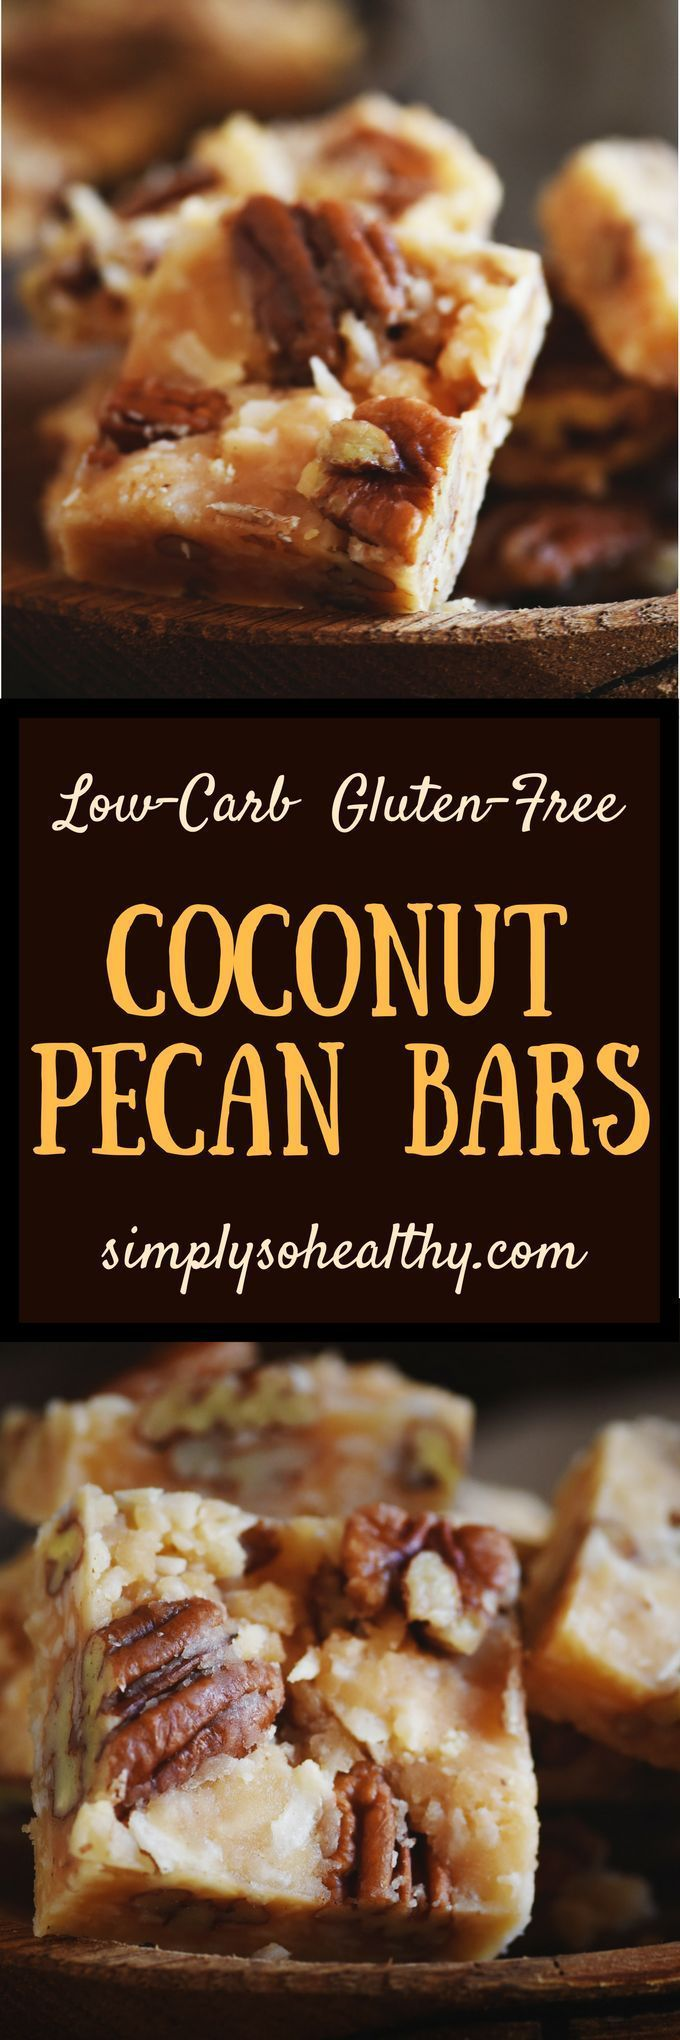 This Low-Carb Coconut Pecan Snack Bar Recipe delivers a delicious portable snack. In this recipe, nuts and coconut are drenched in caramel to make a satisfying treat. These bars can be part of a low-carb, keto, diabetic, gluten-free, grain-free, or Banting diet. #lowcarbrecipe #diabeticrecipes #diabetesdiet